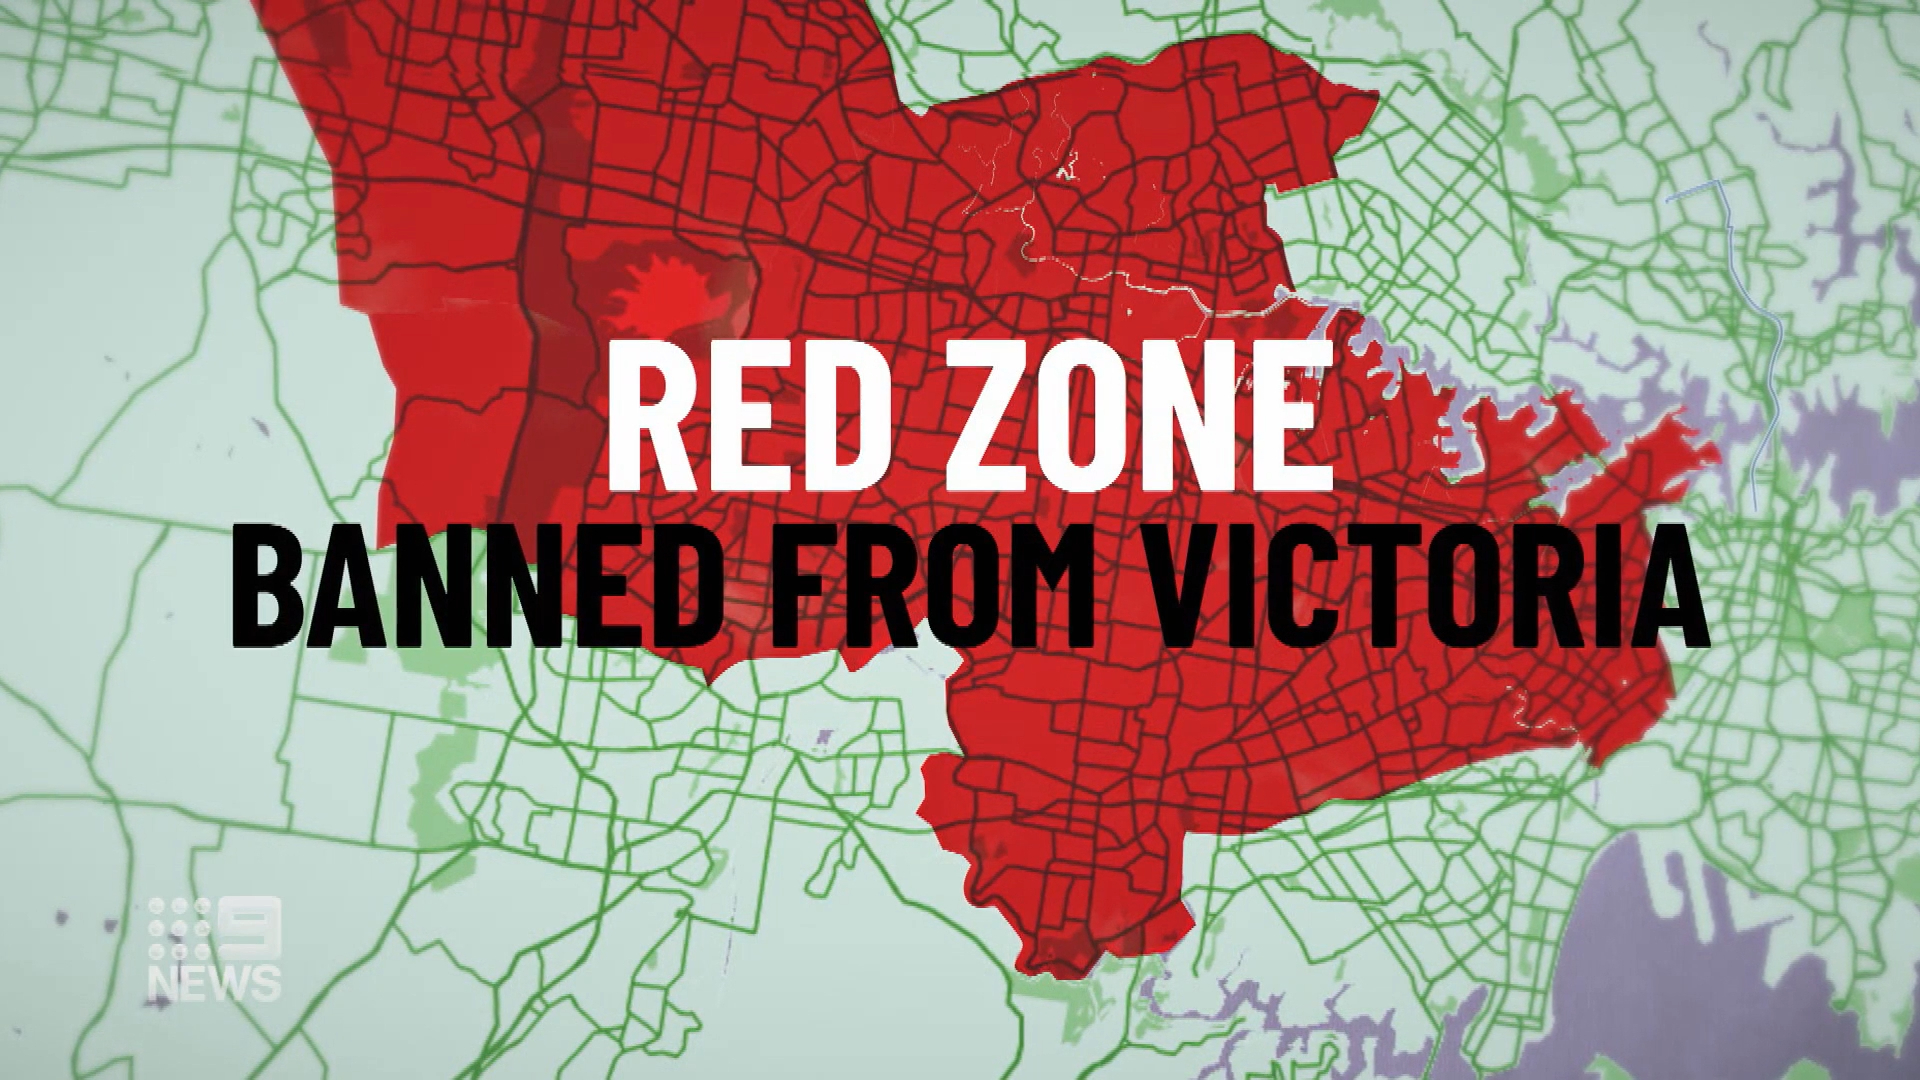 LGA's remain red zones as Victoria eases Sydney restrictions